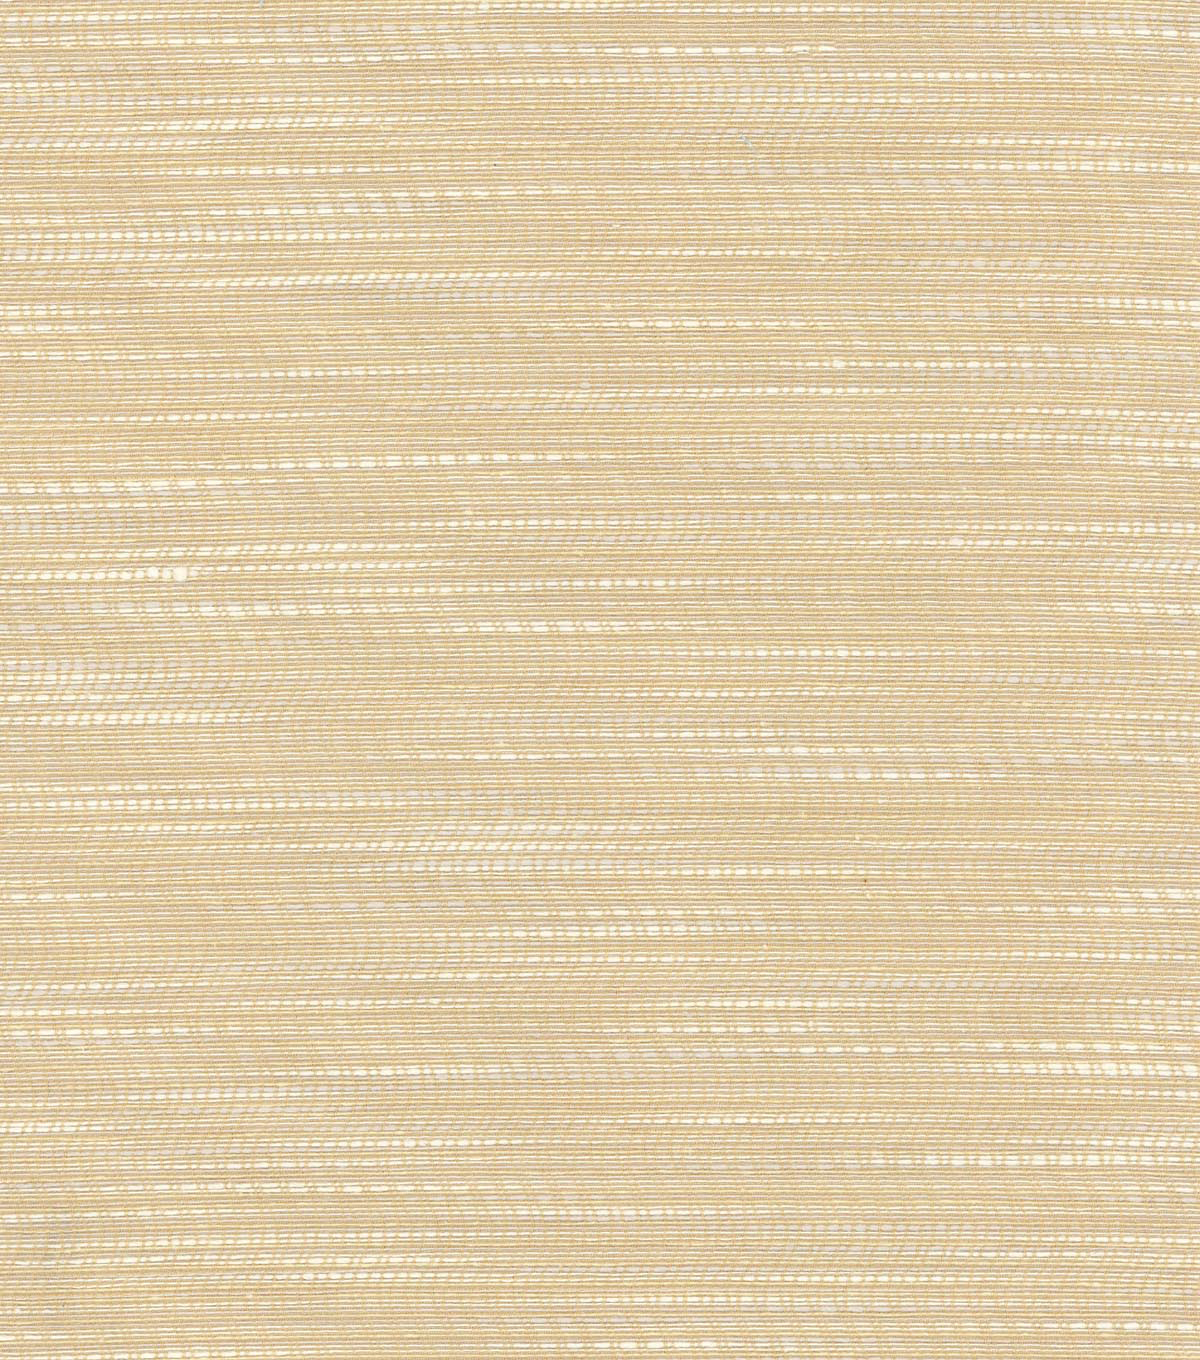 Home Decor 8\u0022x8\u0022 Swatch Fabric-PK Lifestyles Shimmy Almond